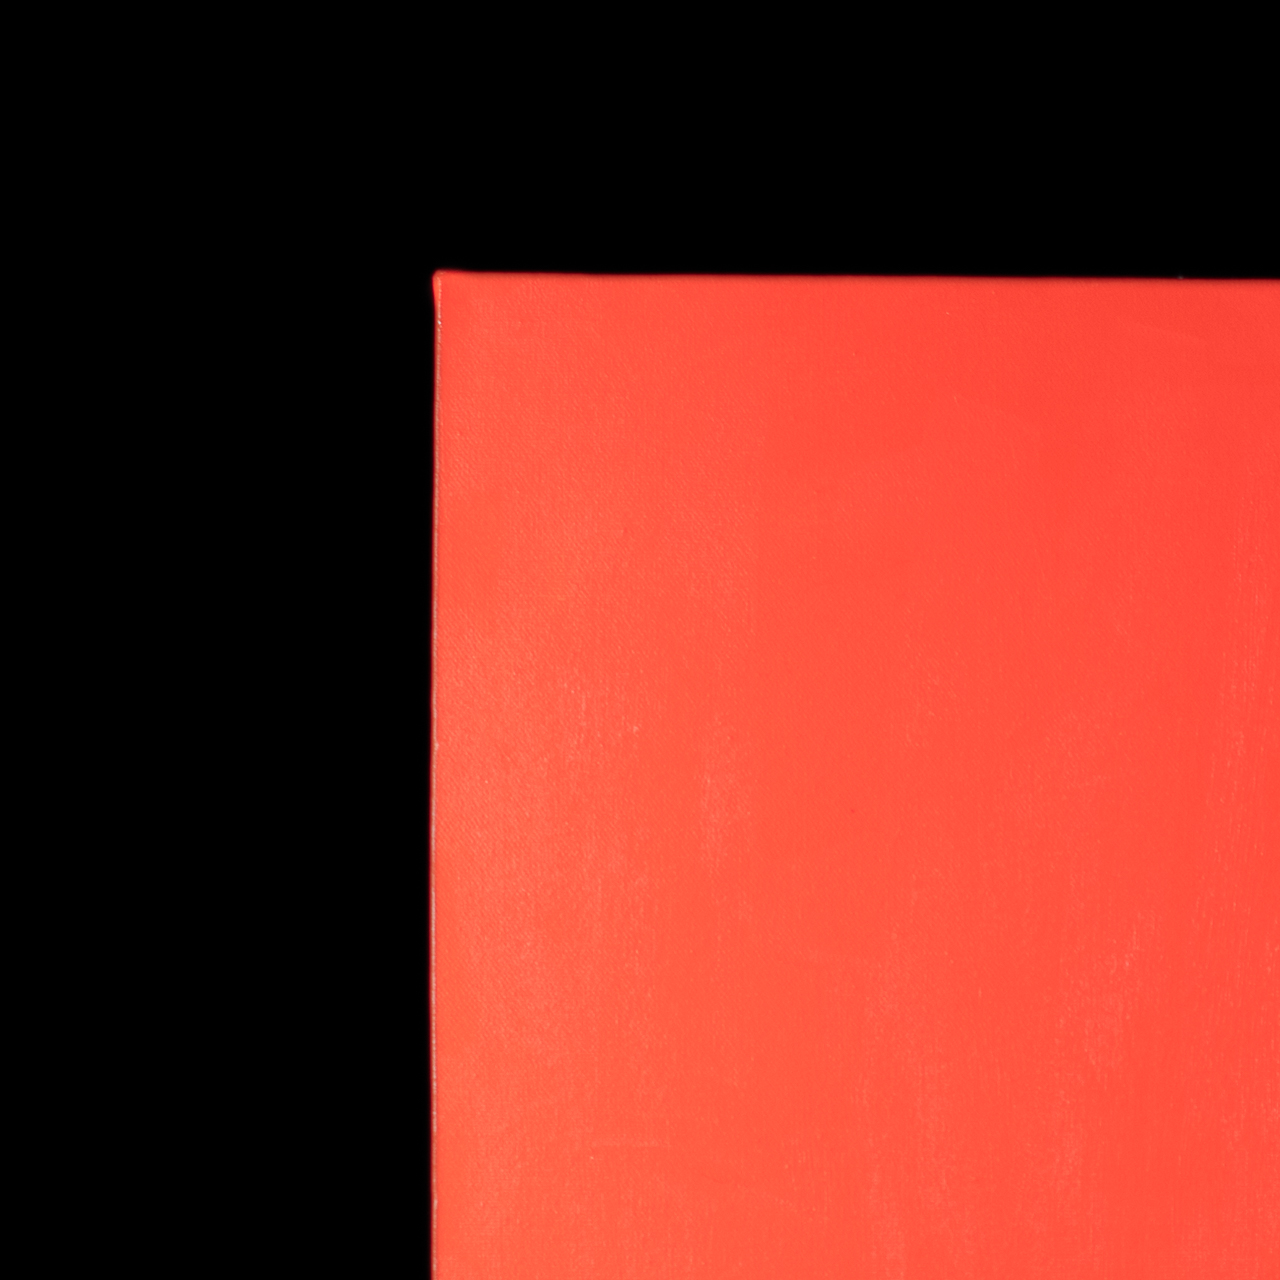 Pair of Contemporary Abstract Paintings Jacob Lloyds - Image 6 of 13